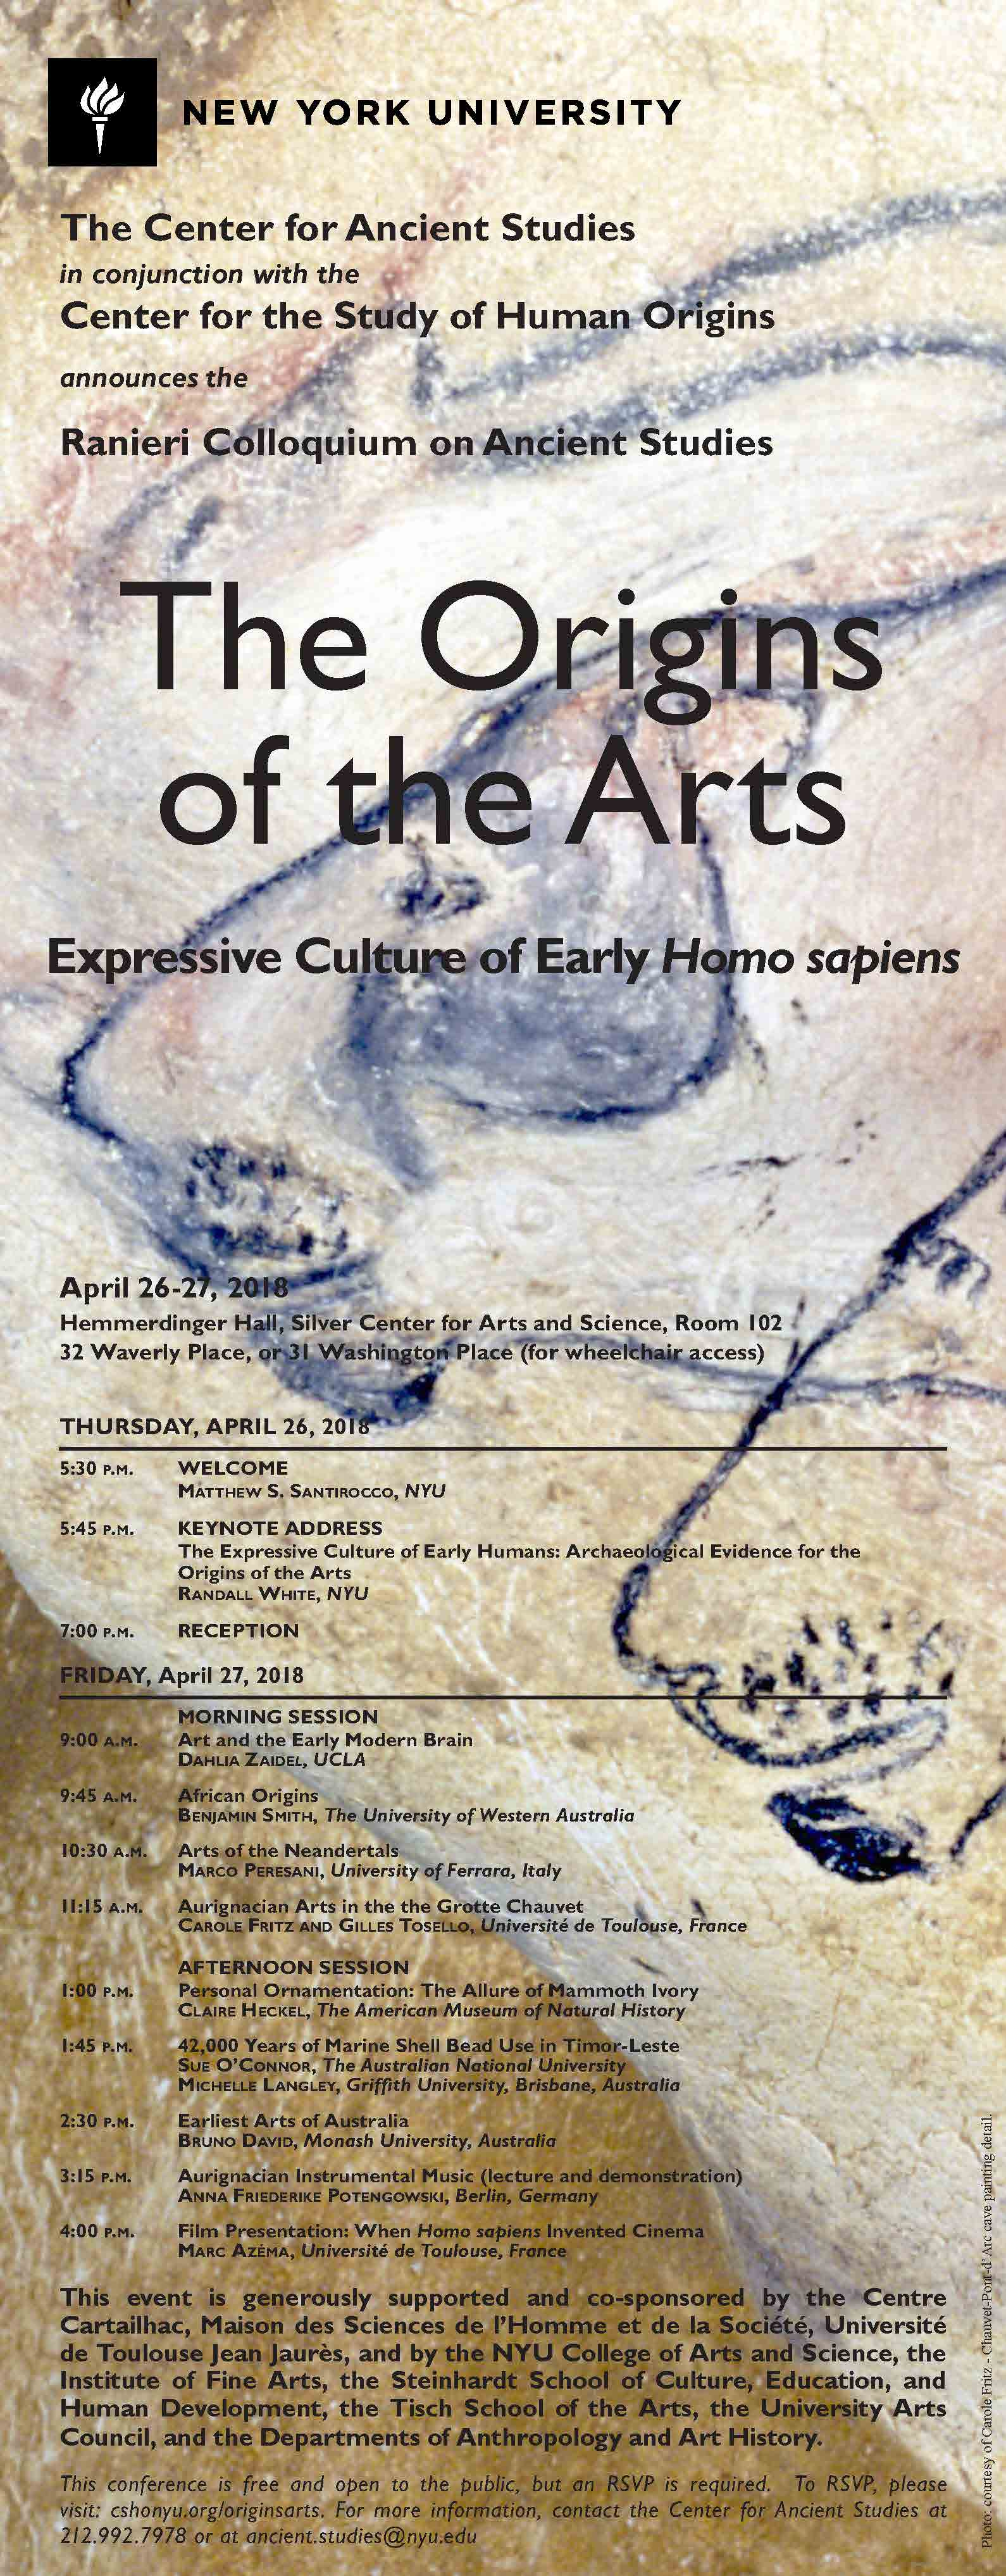 Ranier Colloquium on Ancient Studies: The Origin of the Arts. April 26th-27th 2018. Address is 32 Waverly Place or 31 Washington Place for wheelchair access. RSVP by going to cshonyu.org/originsarts